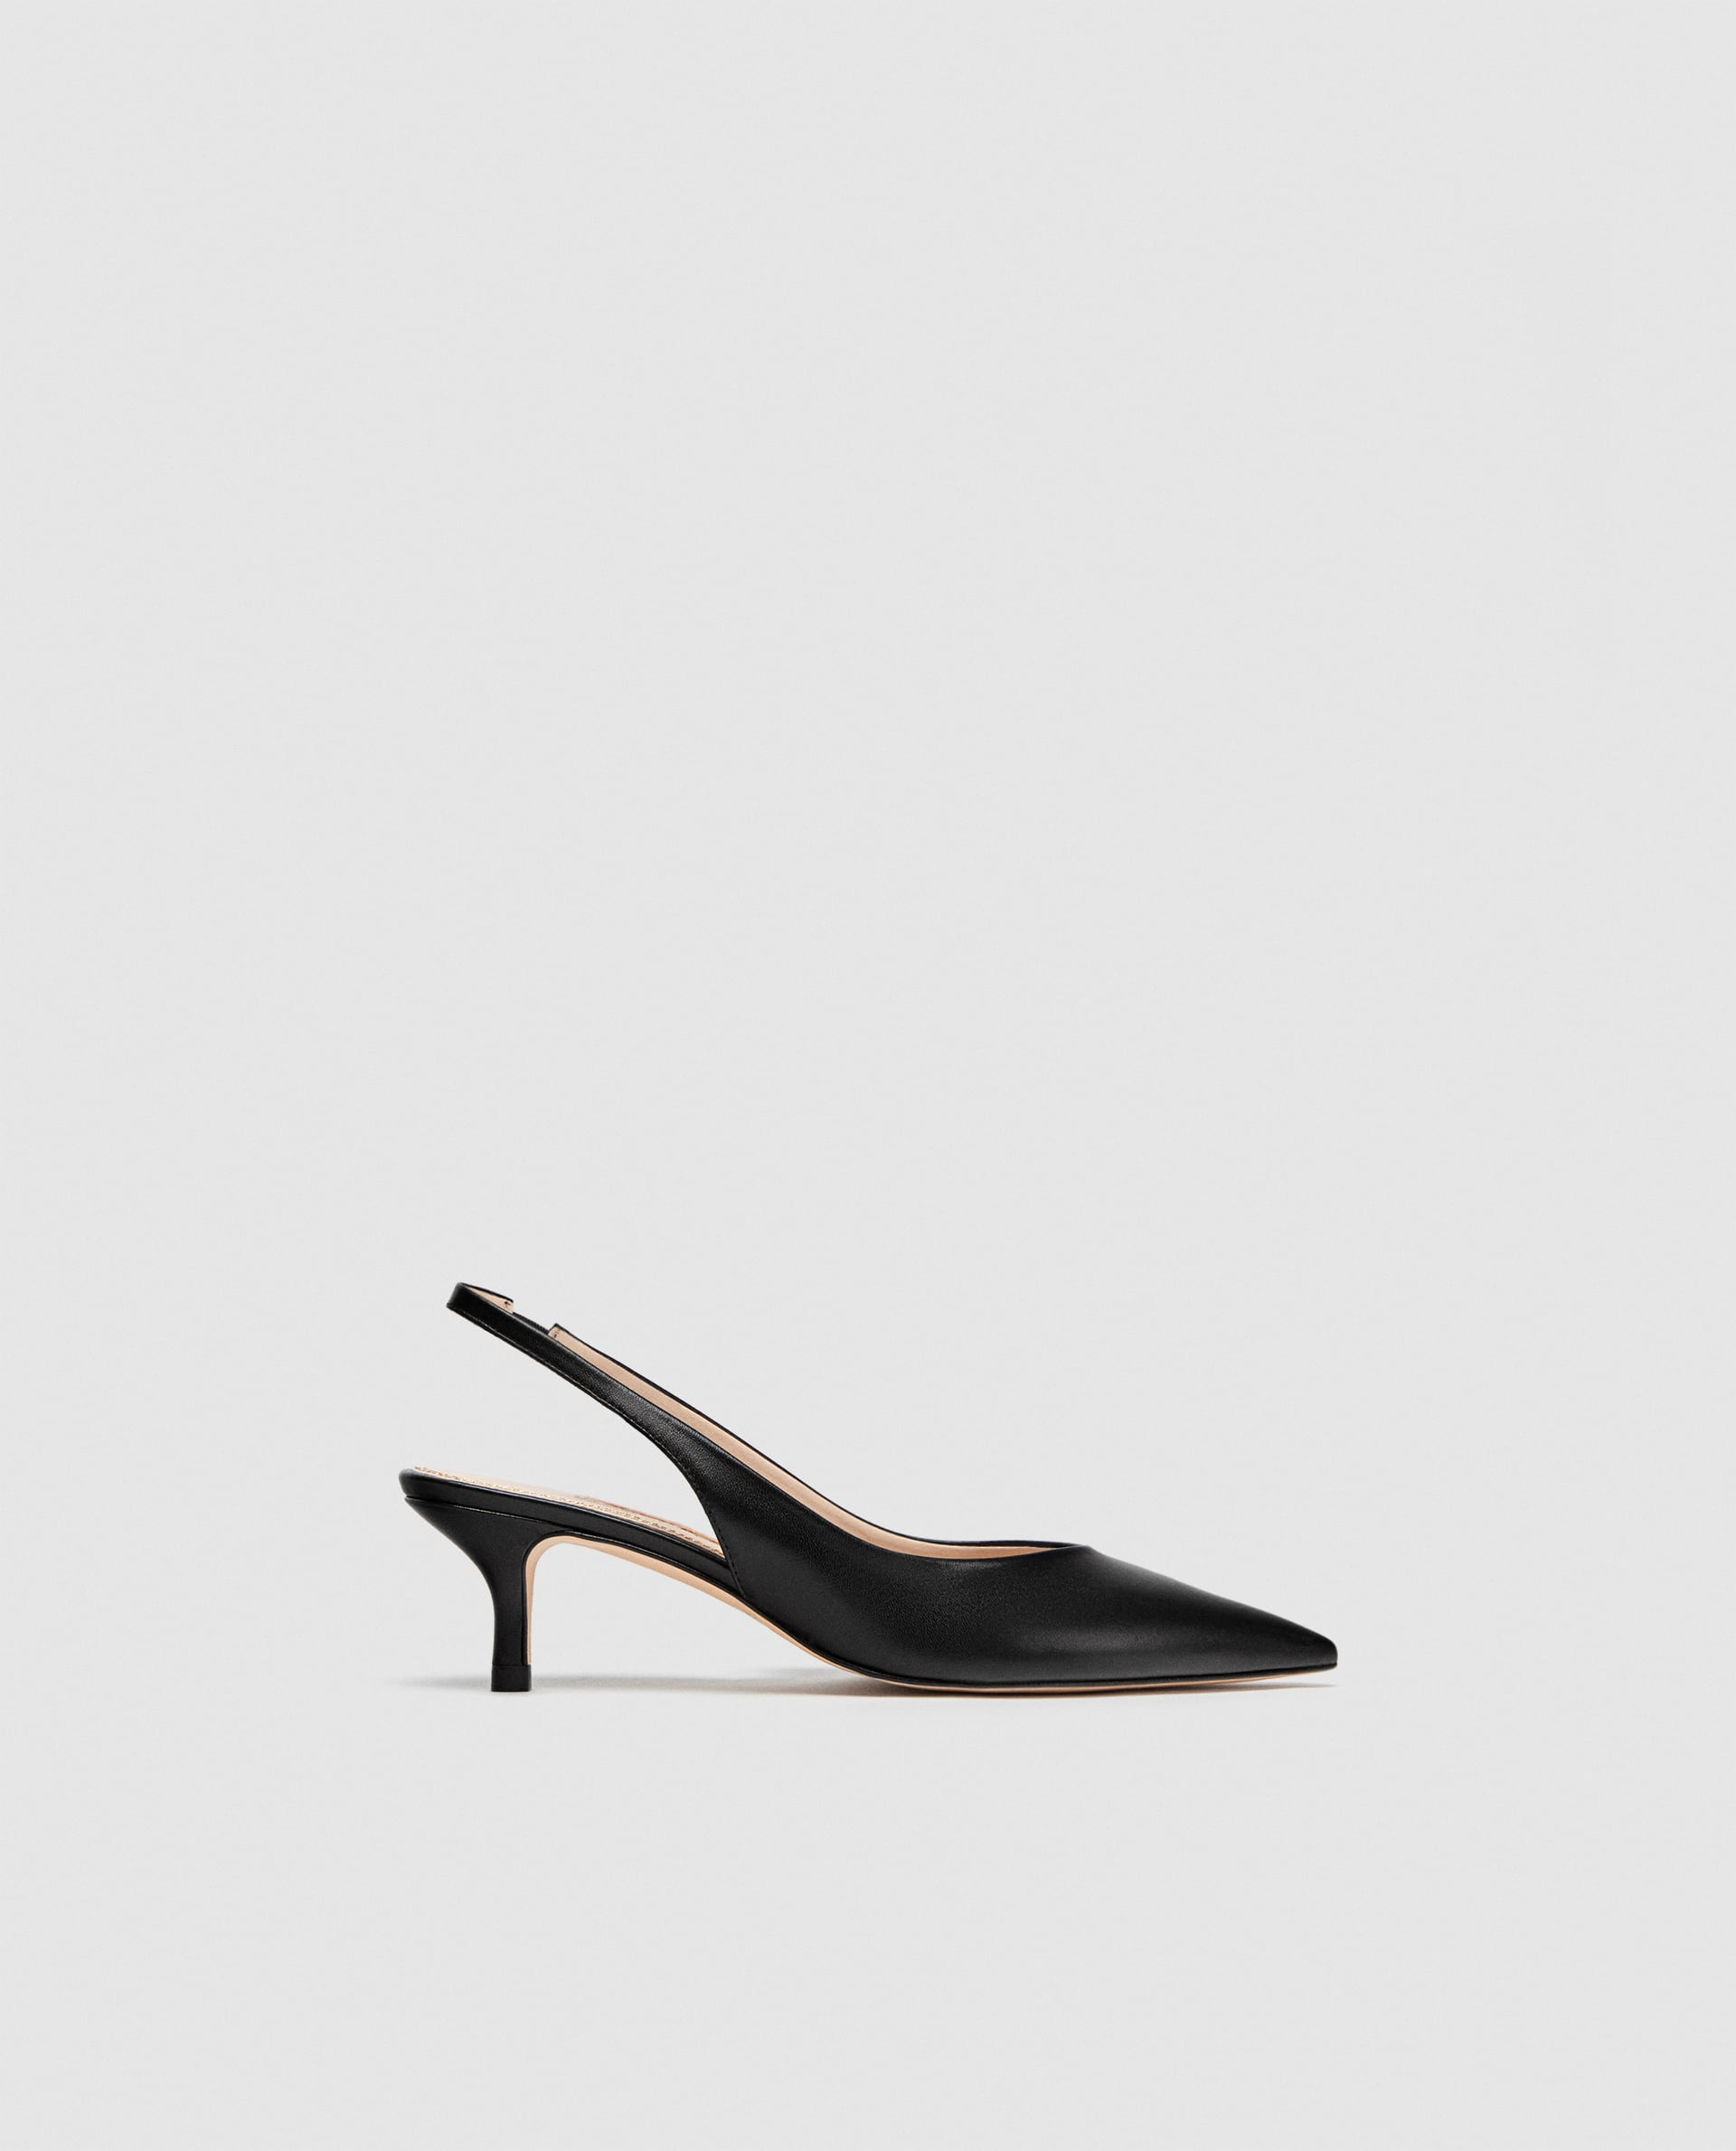 Leather Backless High Heel Shoes  View All Shoes Woman by Zara